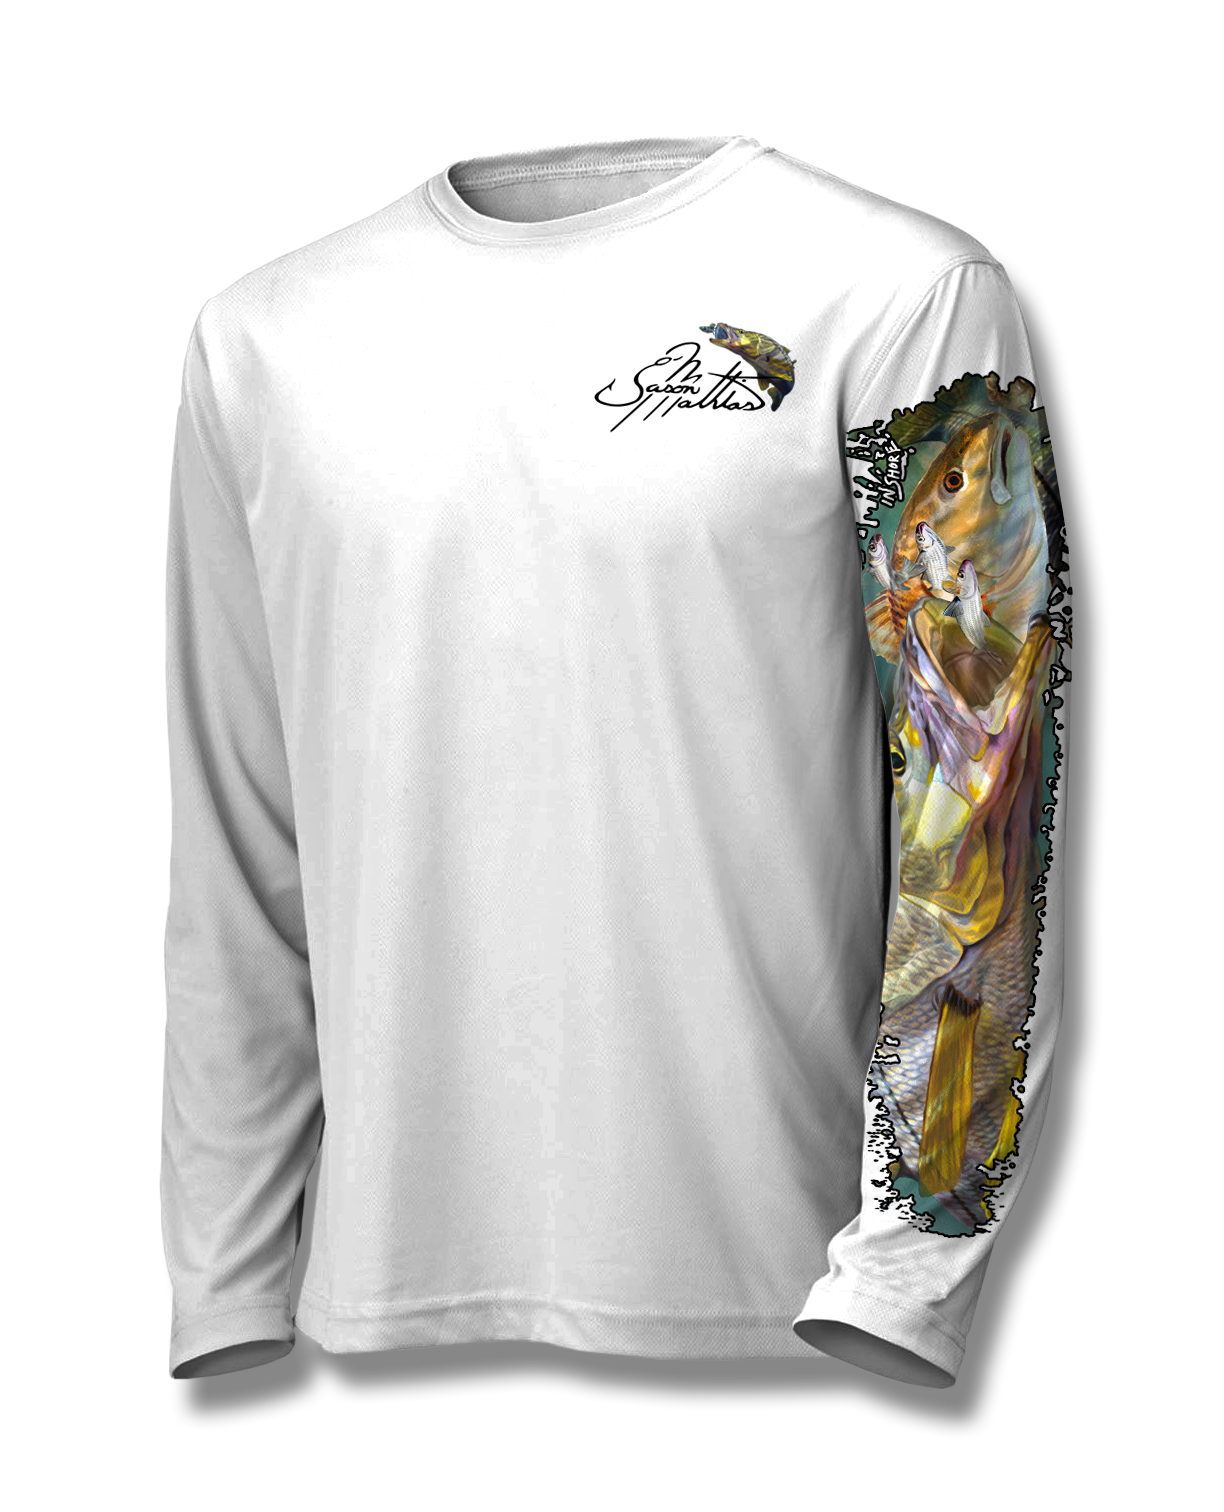 inshore-redfish-snook-shirt-white-front-jason-mathias.png